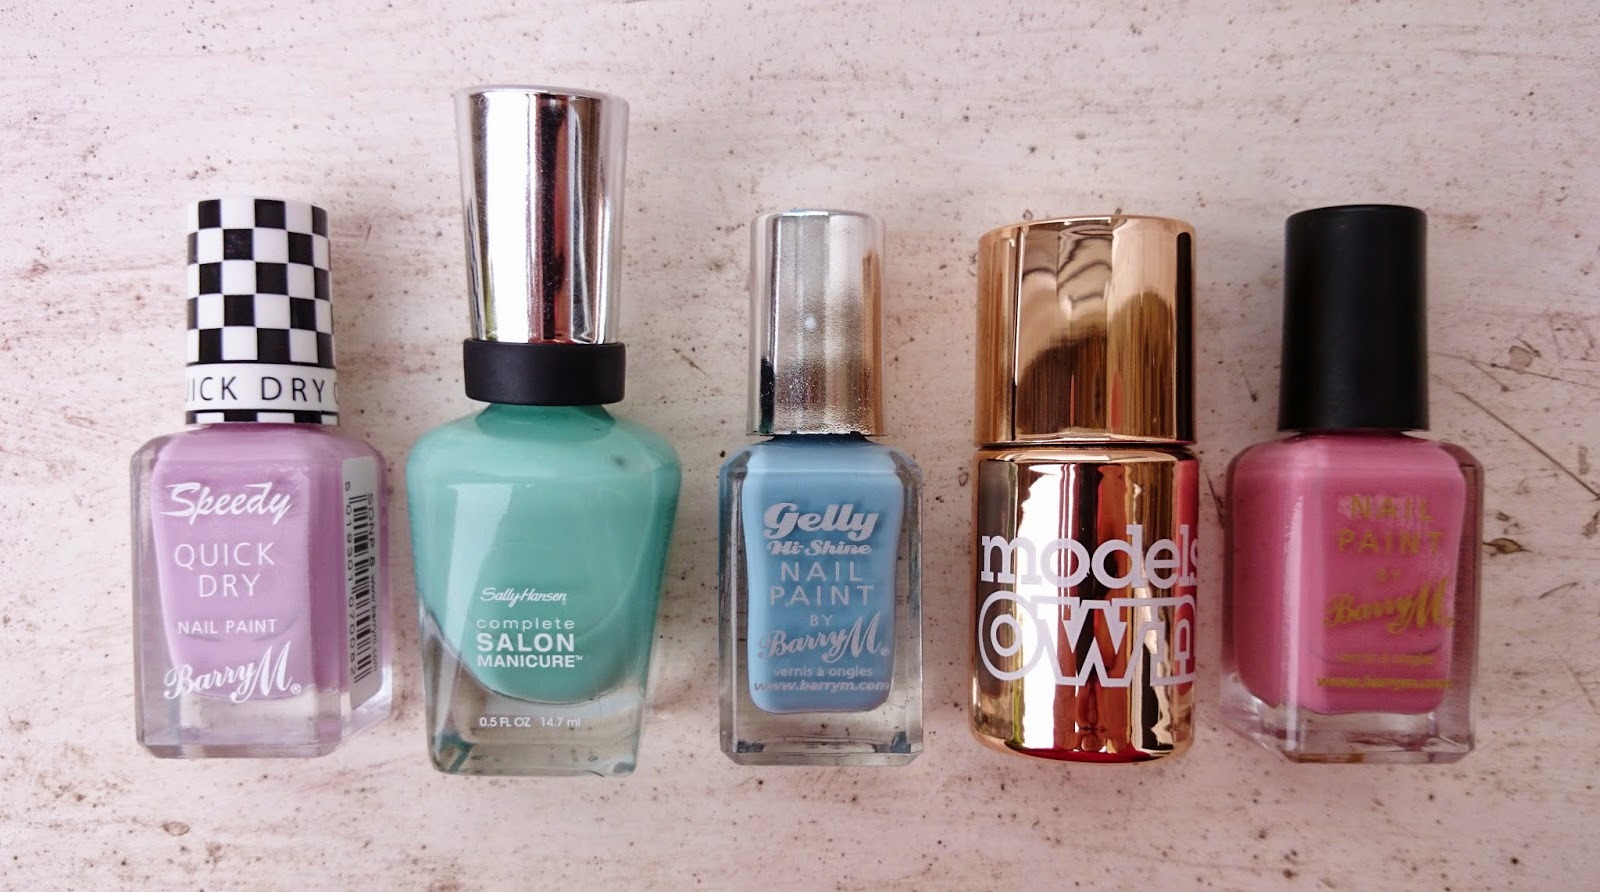 Top 5 Nail Polishes For Spring 2015